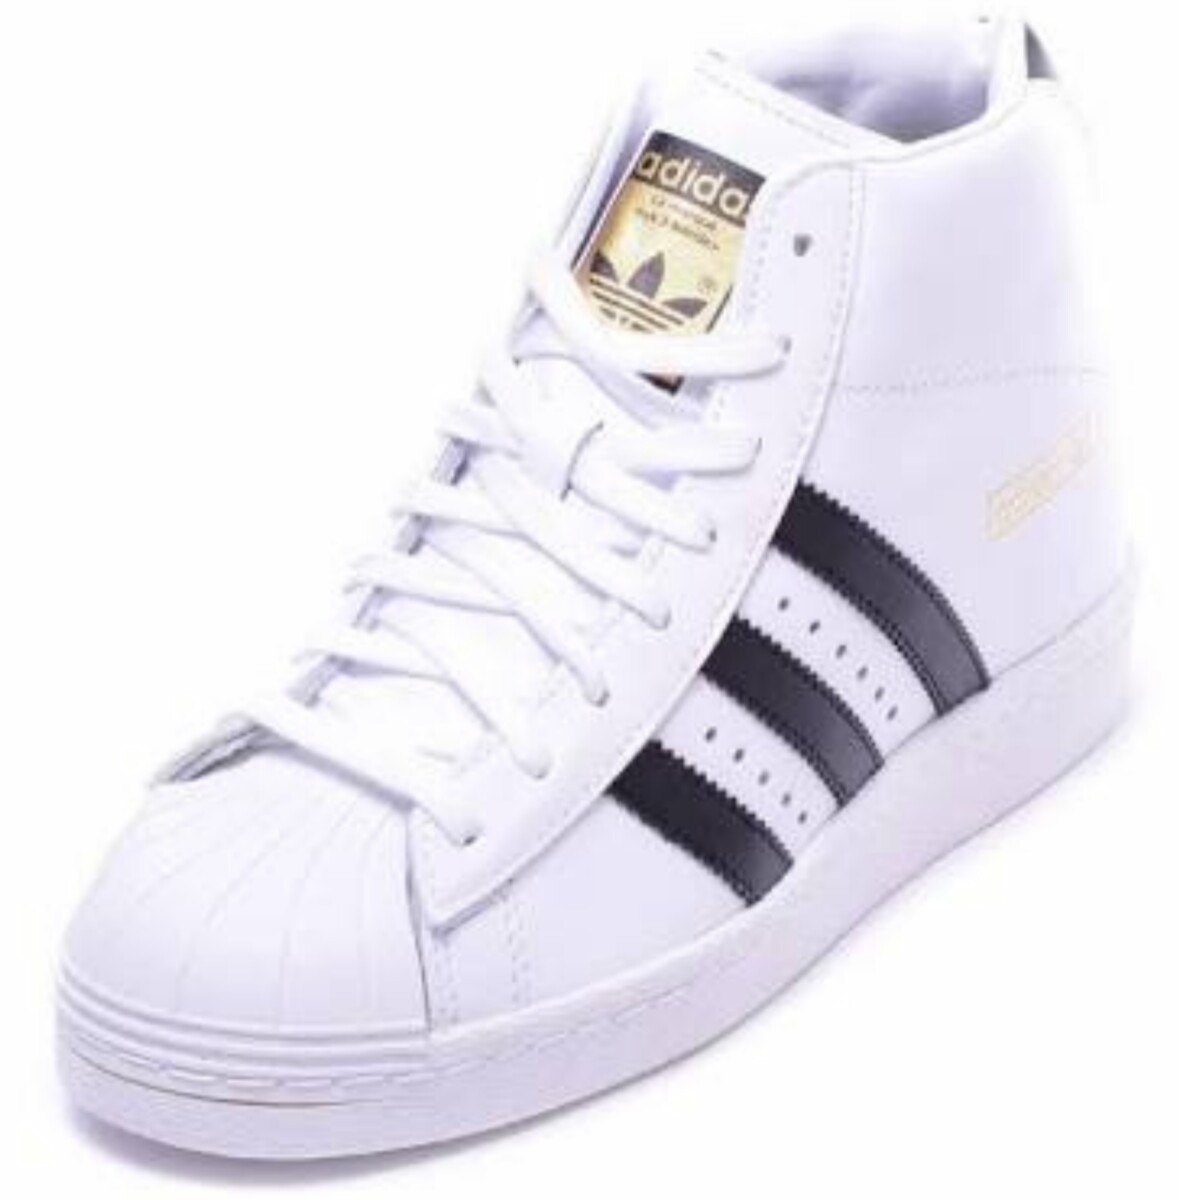 b2189a0c21d ... where can i buy adidas superstar fundation gold bota choclo blanco  negro. cargando zoom.